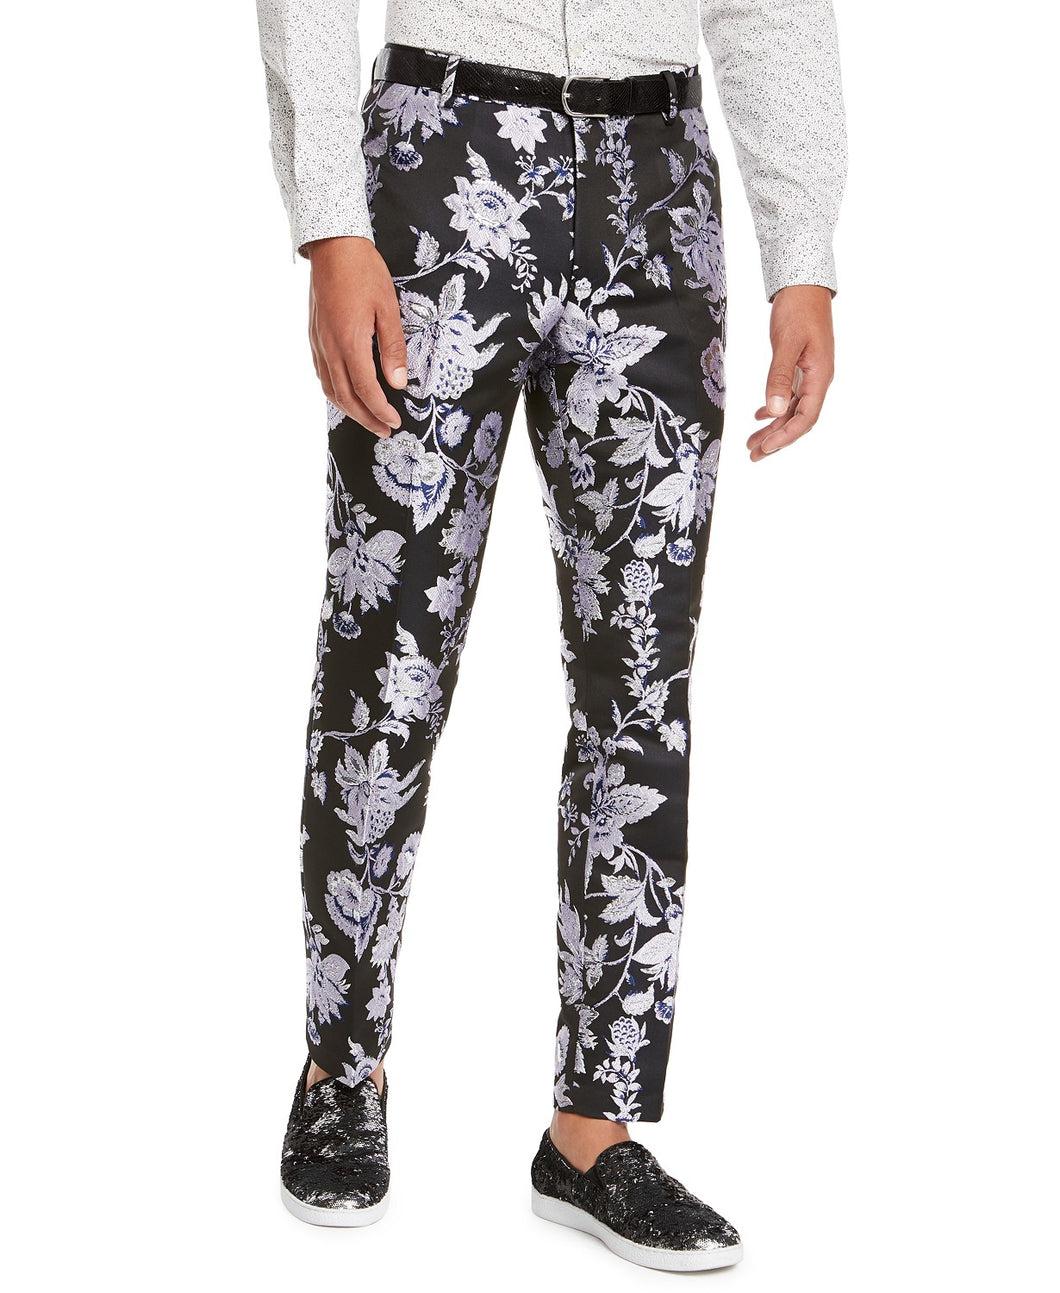 INC INTERNATIONAL CONCEPTS - Men's Slim-Fit Floral Jacquard Pants